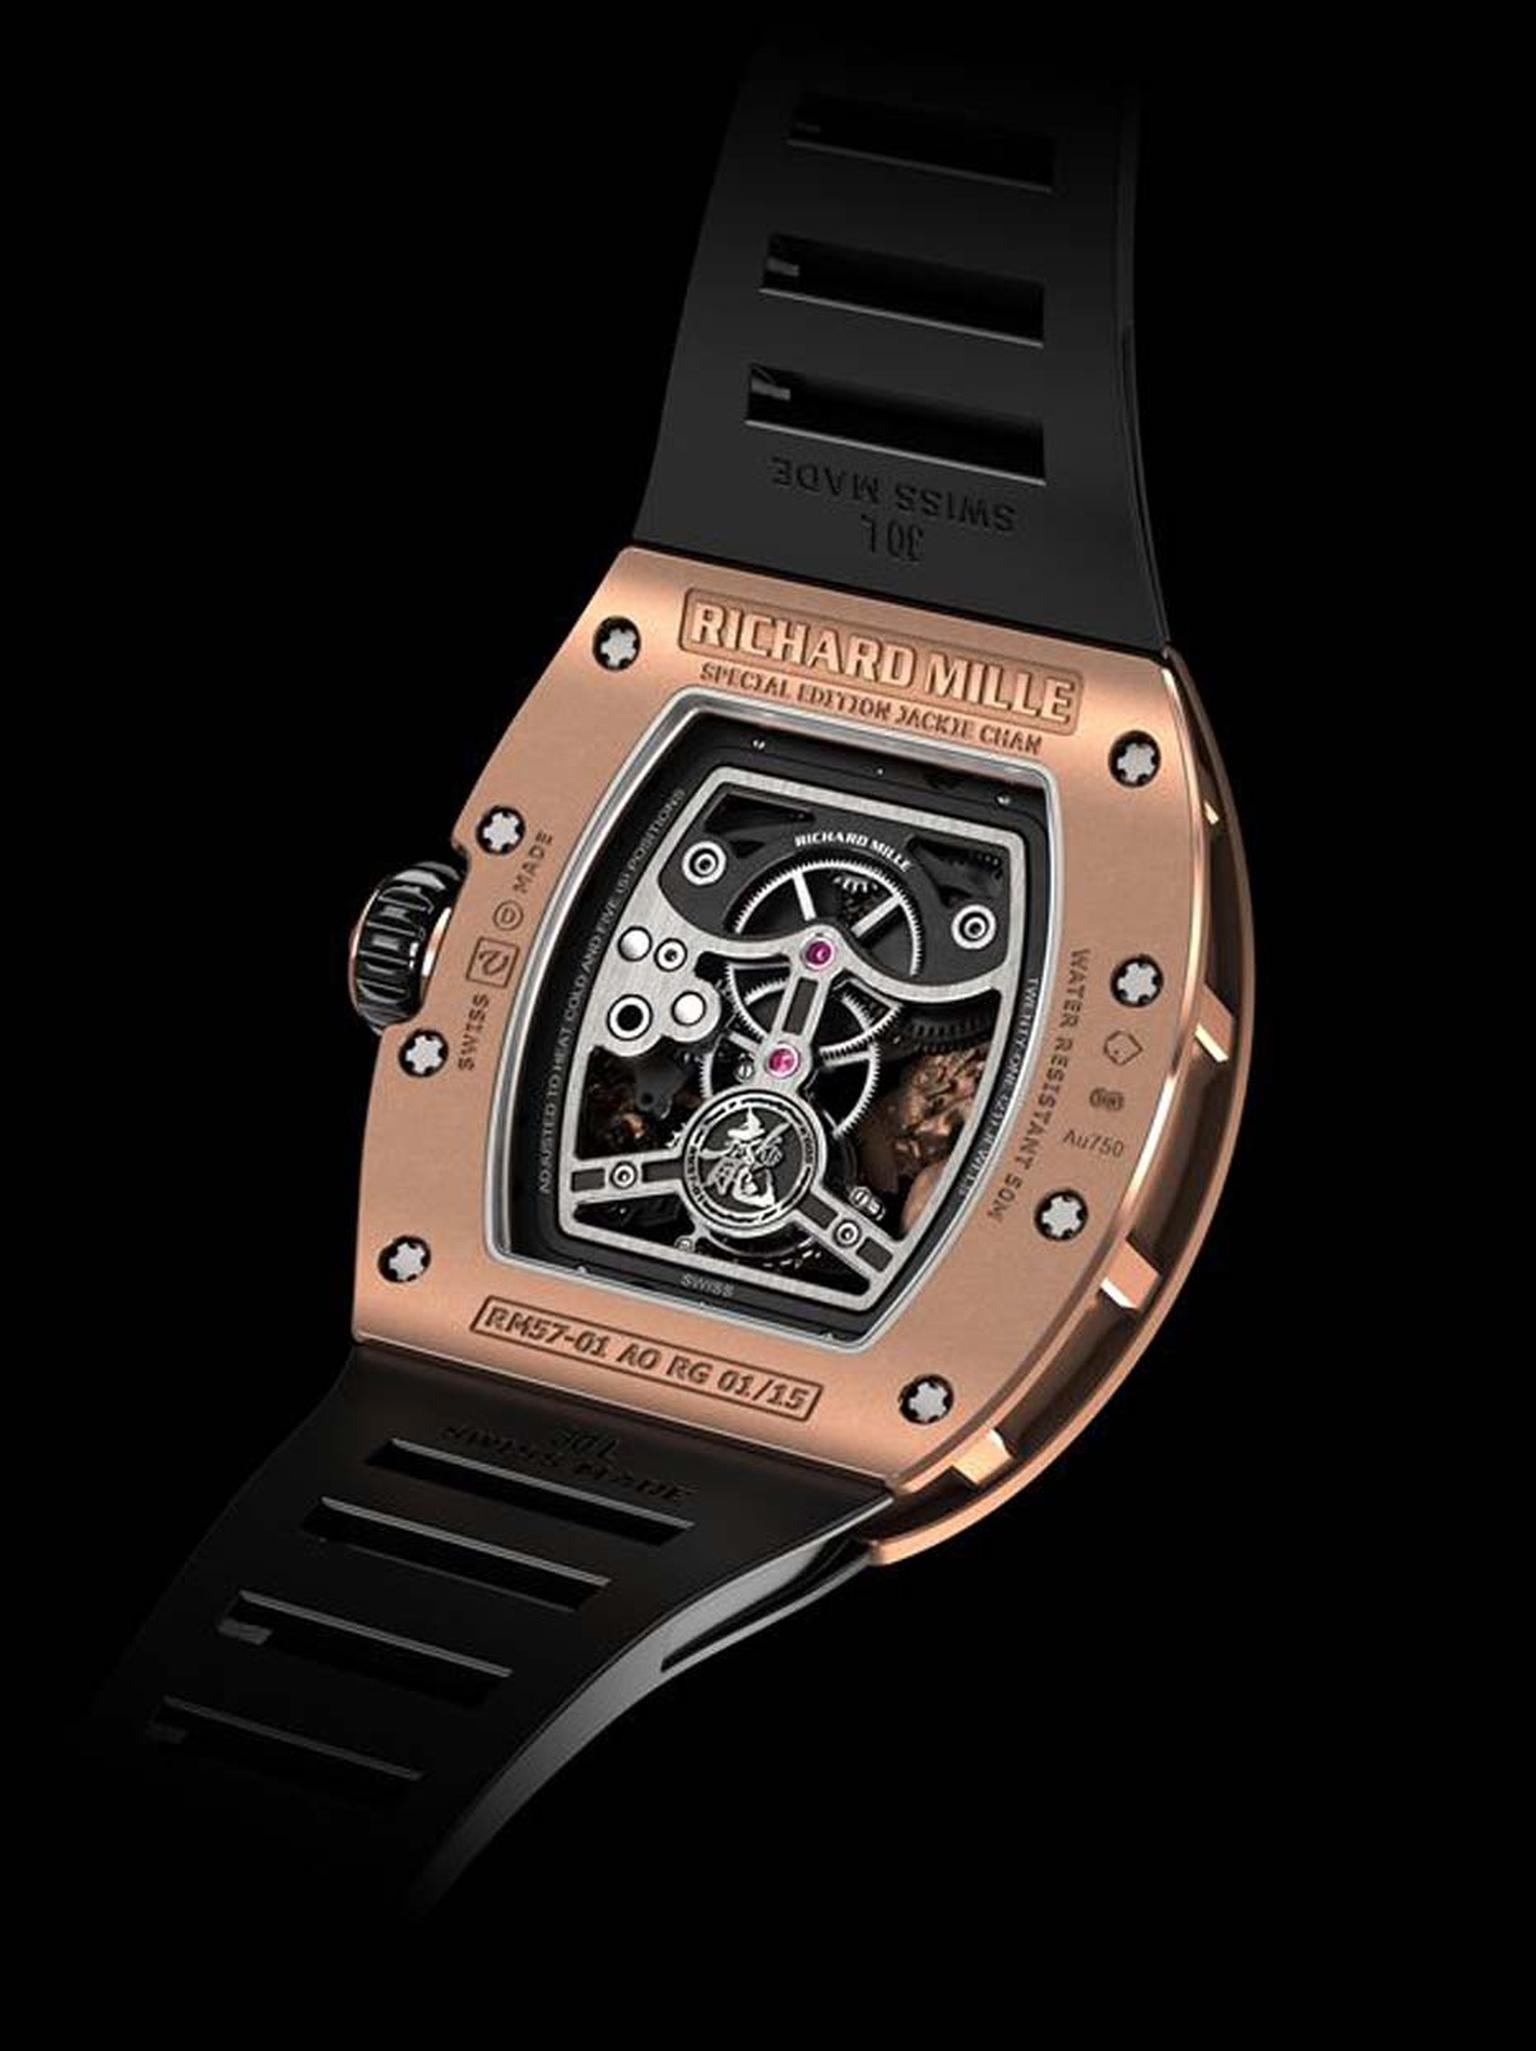 The new Richard Mille RM 57-01 Phoenix and Dragon Jackie Chan watch has double winding barrels to ensure a power reserve of 48 hours. Limited to 15 pieces in white or rose gold, it is destined to become a collector's piece.